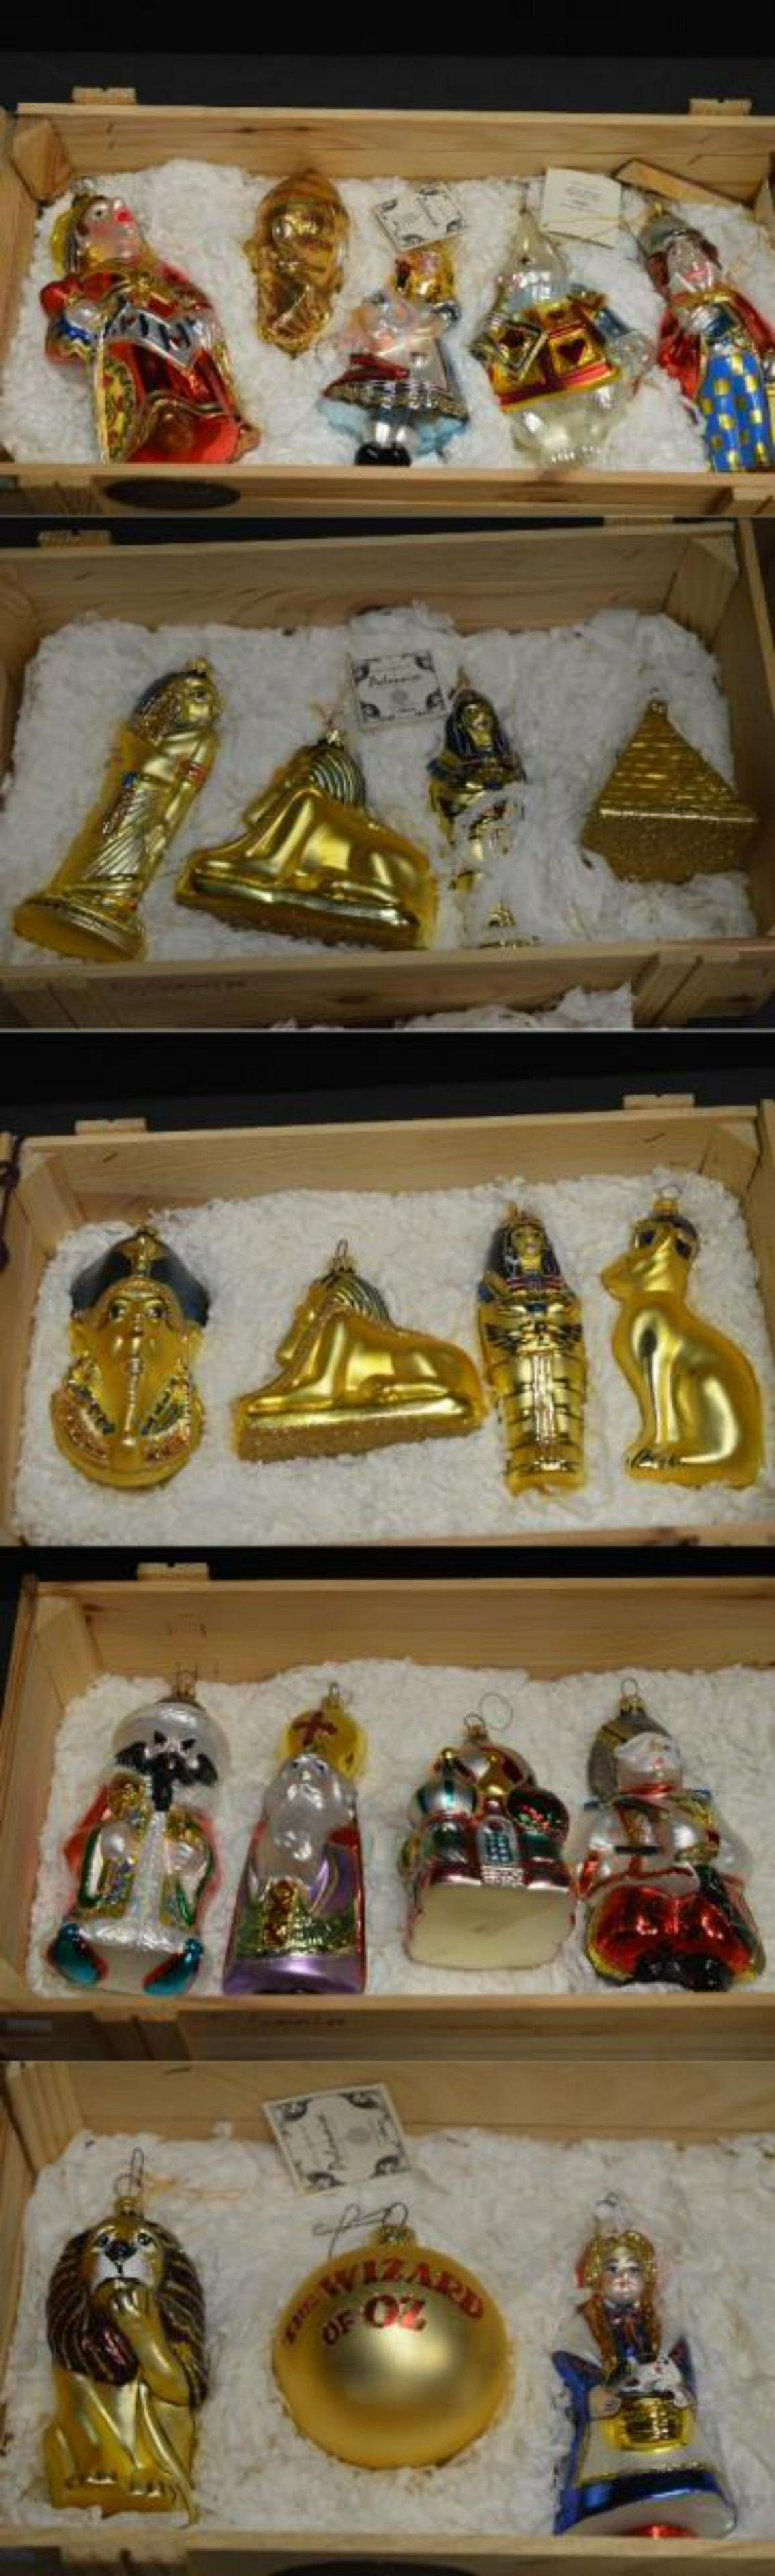 Large Lot of Wooden Crated Komozja Ornaments